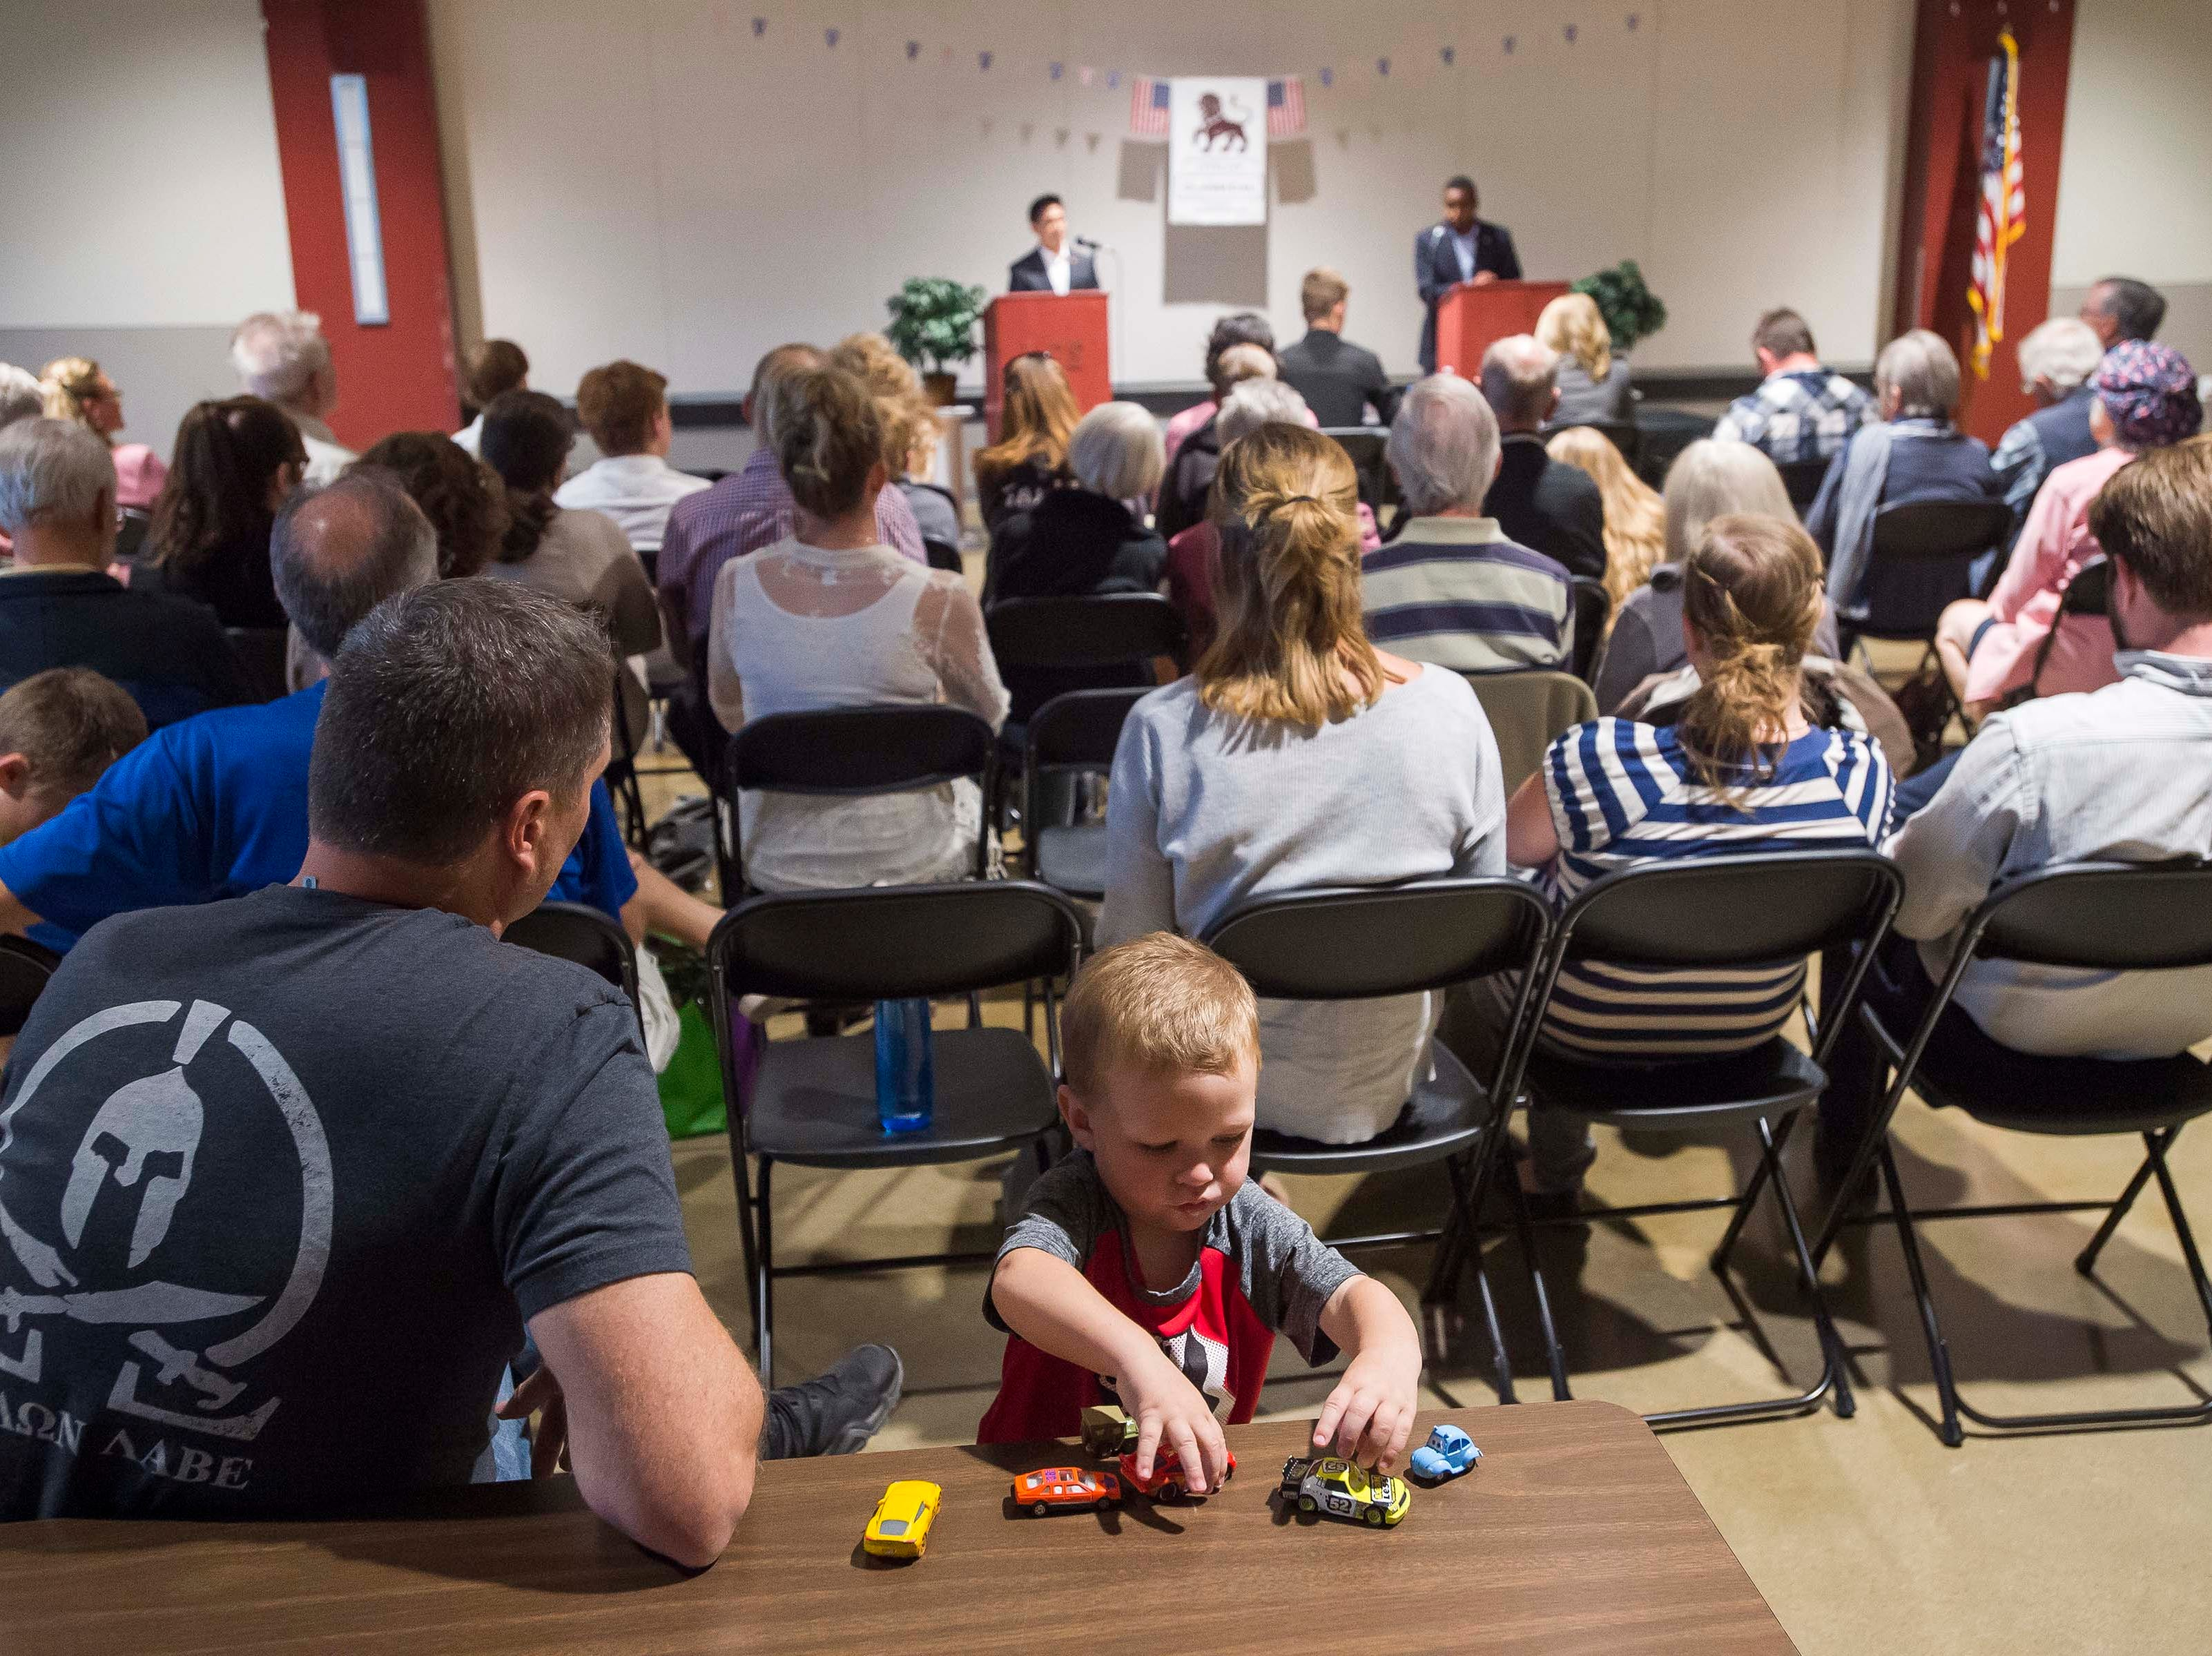 Beckham Coberly, 1, plays with toy cars while his father Guy Coberly watches a debate between Colorado's 2nd Congressional District Democratic nominee Joe Neguse and Republican nominee Peter Yu on Wednesday, Sept. 26, 2018, at the Loveland Classical Schools in Loveland, Colo.